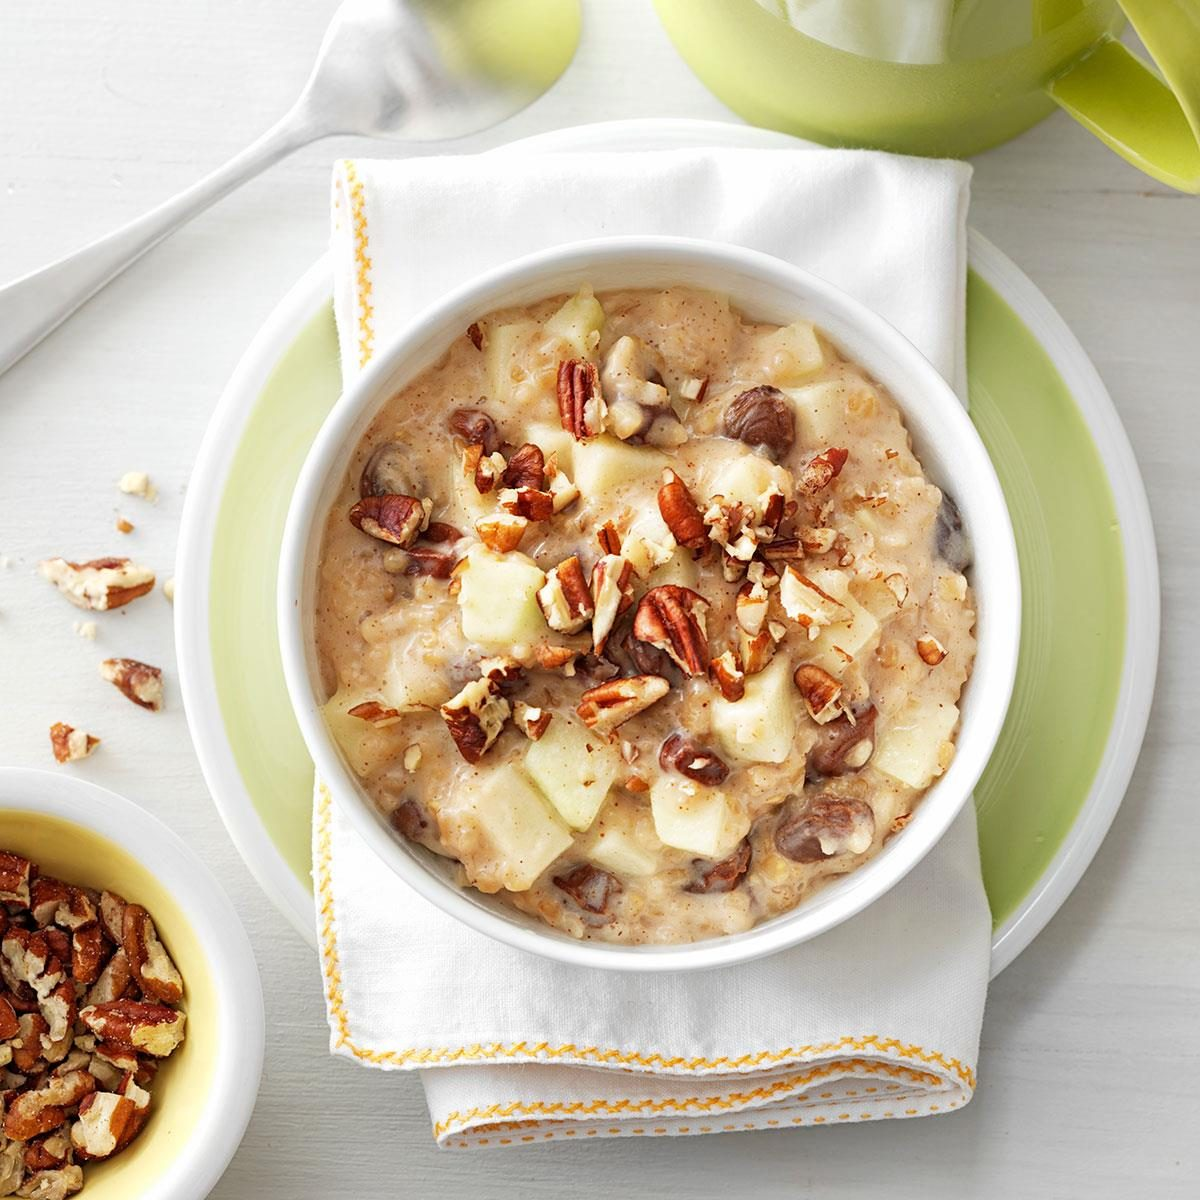 The Secret Way to Prevent Oatmeal (And Almost Any Other Dish) From Burning In the Slow Cooker